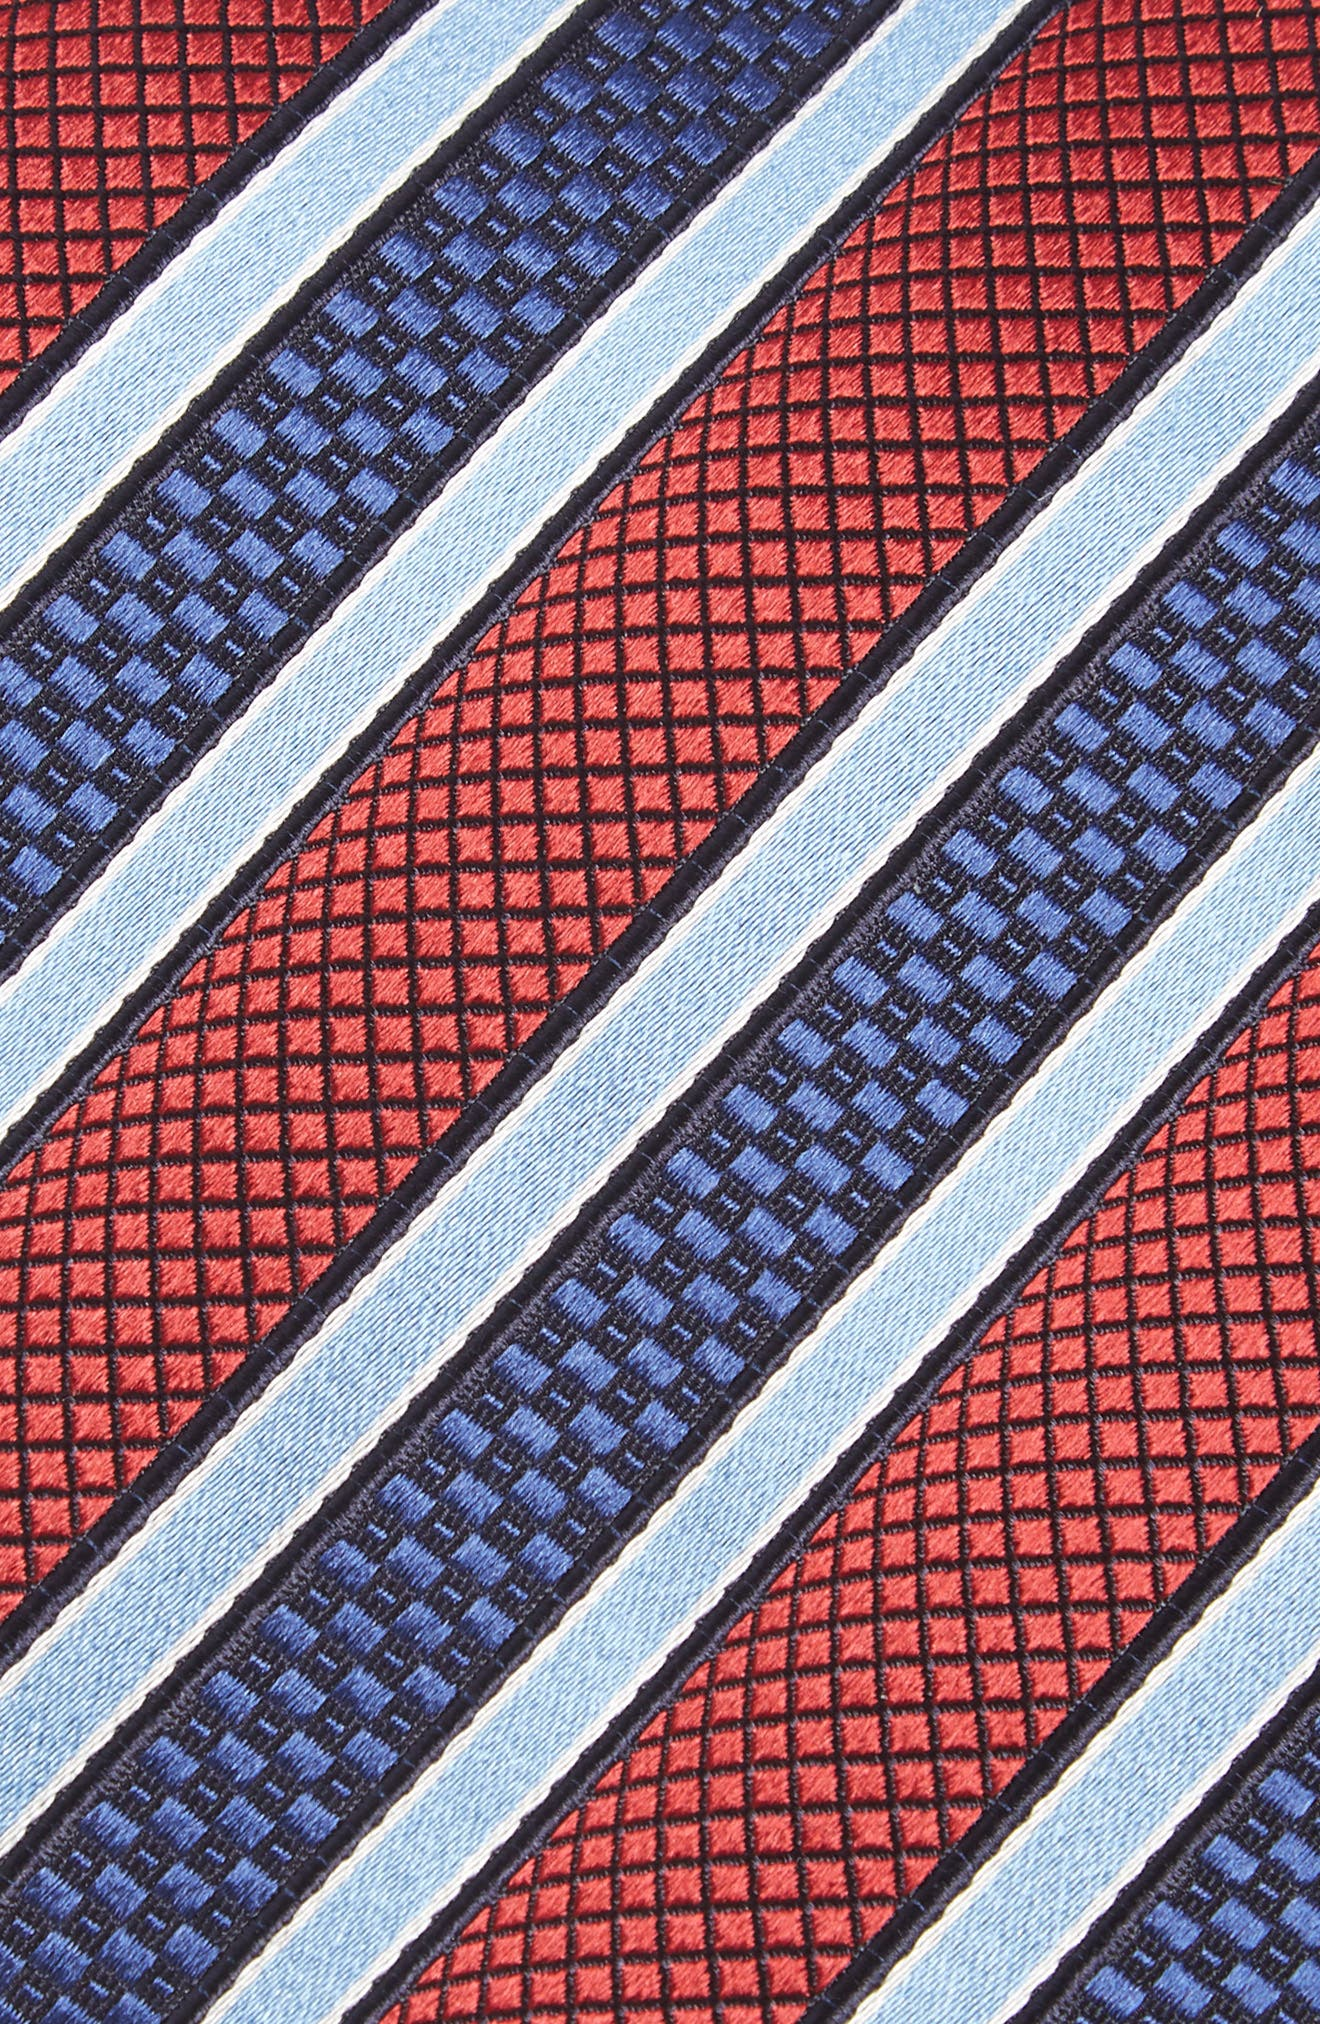 Stripe Silk Tie,                             Alternate thumbnail 2, color,                             600